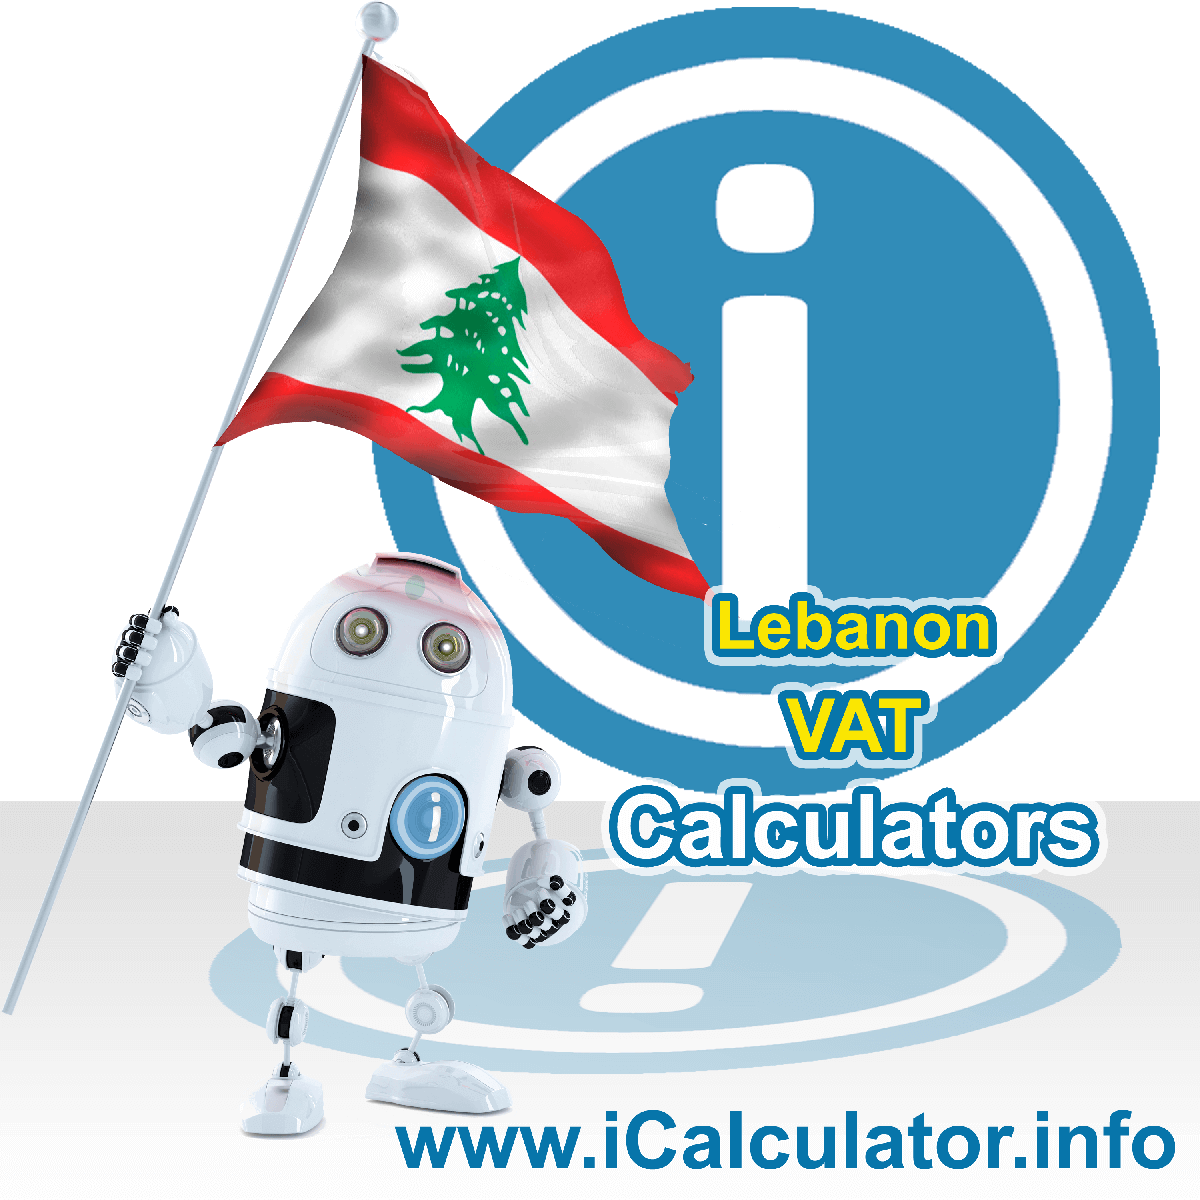 Lebanon VAT Calculator. This image shows the Lebanon flag and information relating to the VAT formula used for calculating Value Added Tax in Lebanon using the Lebanon VAT Calculator in 2021